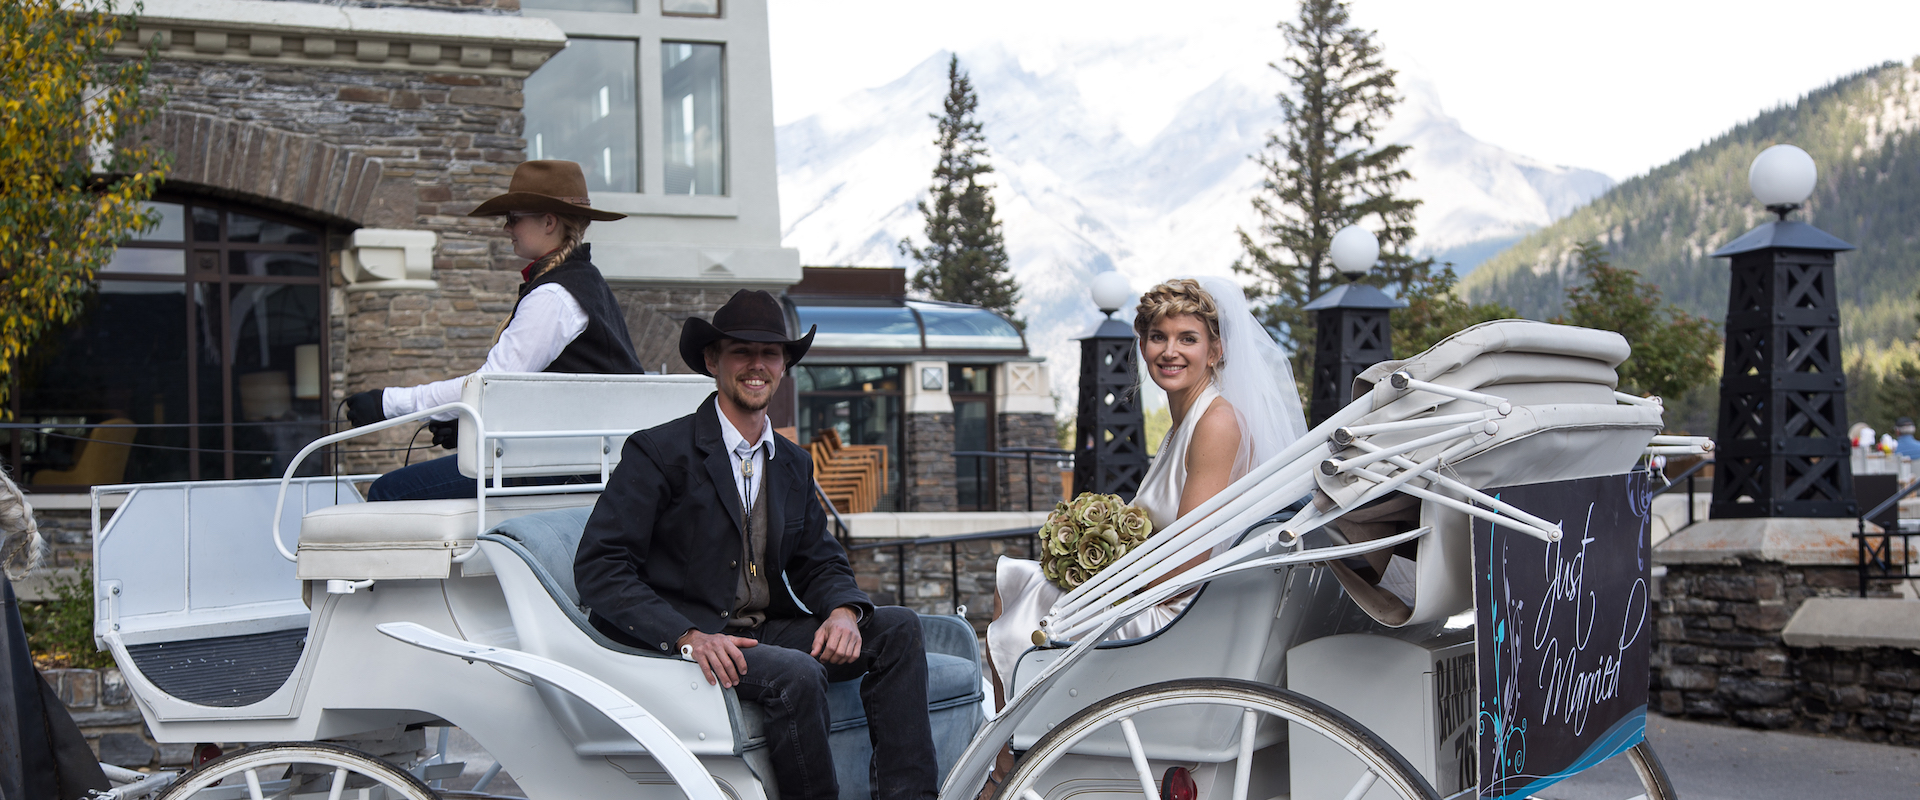 Wedding Carriage Ride